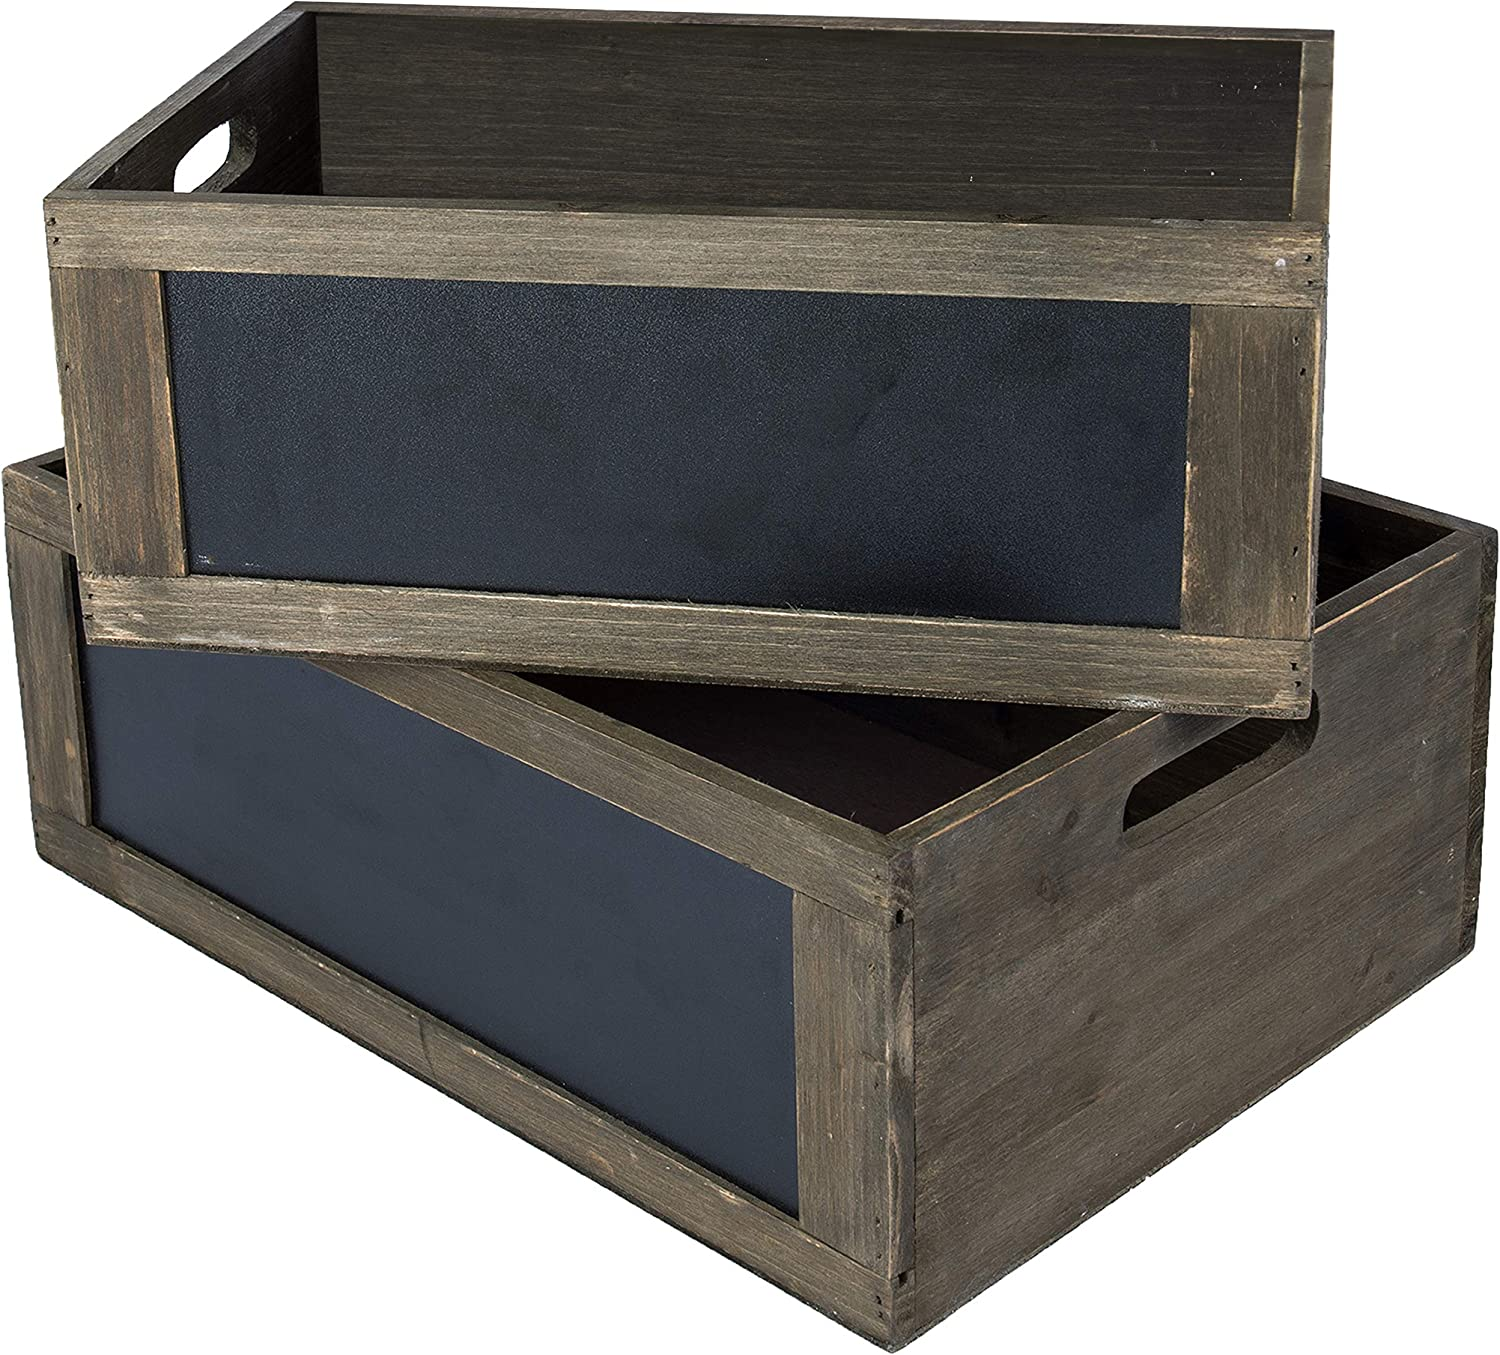 MyGift Set of 2 Rustic Brown Wood Nesting Storage Crates with Chalkboard Front Panel and Cutout Handles